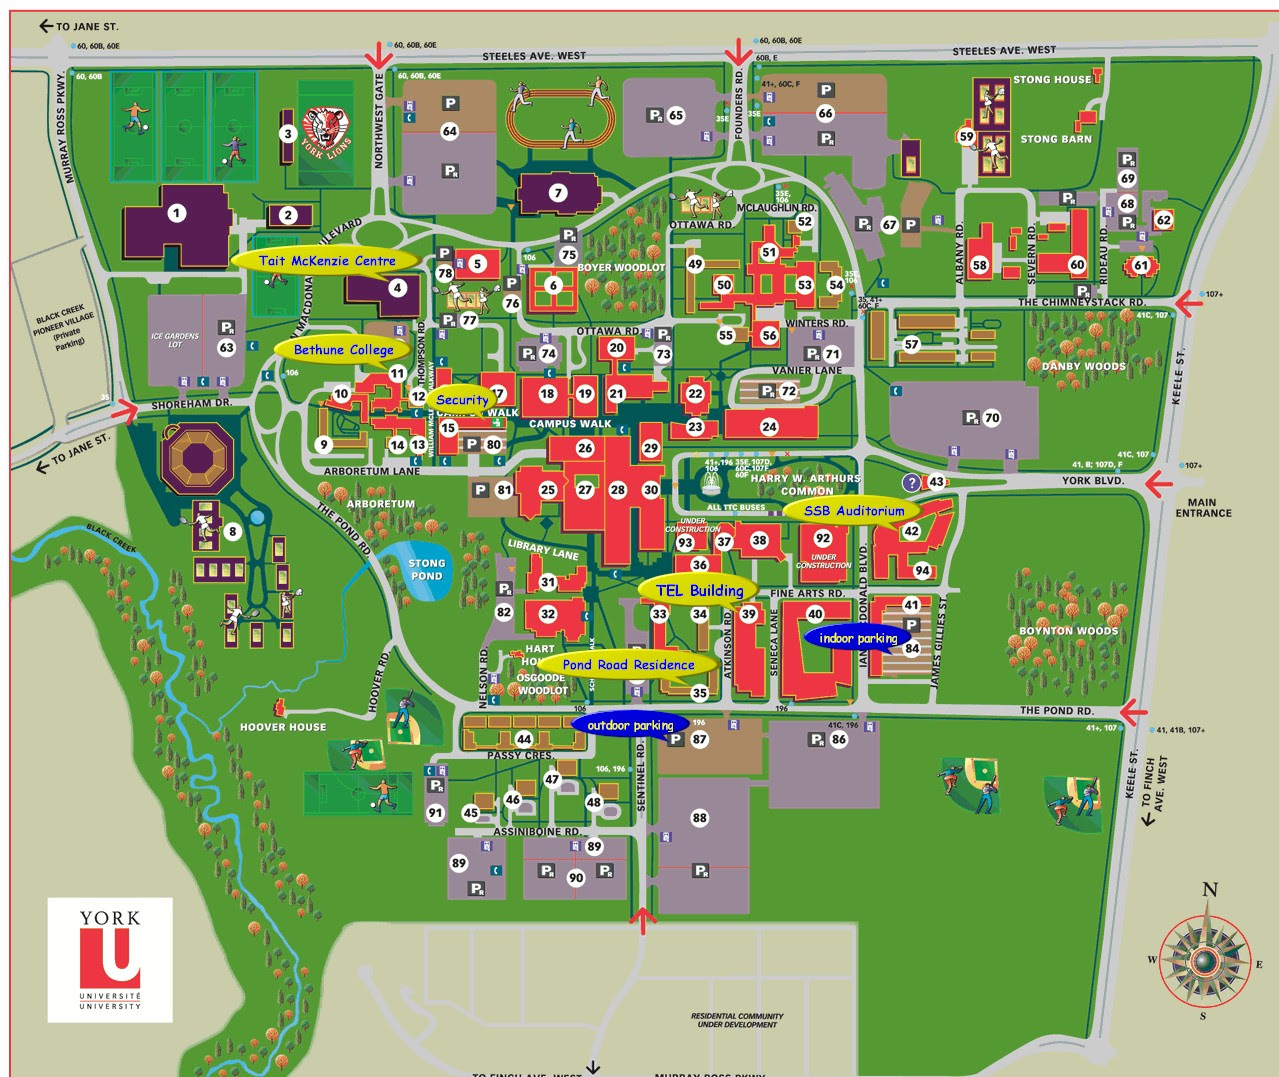 York University Campus Map York Campus Map | Bedroom 2018